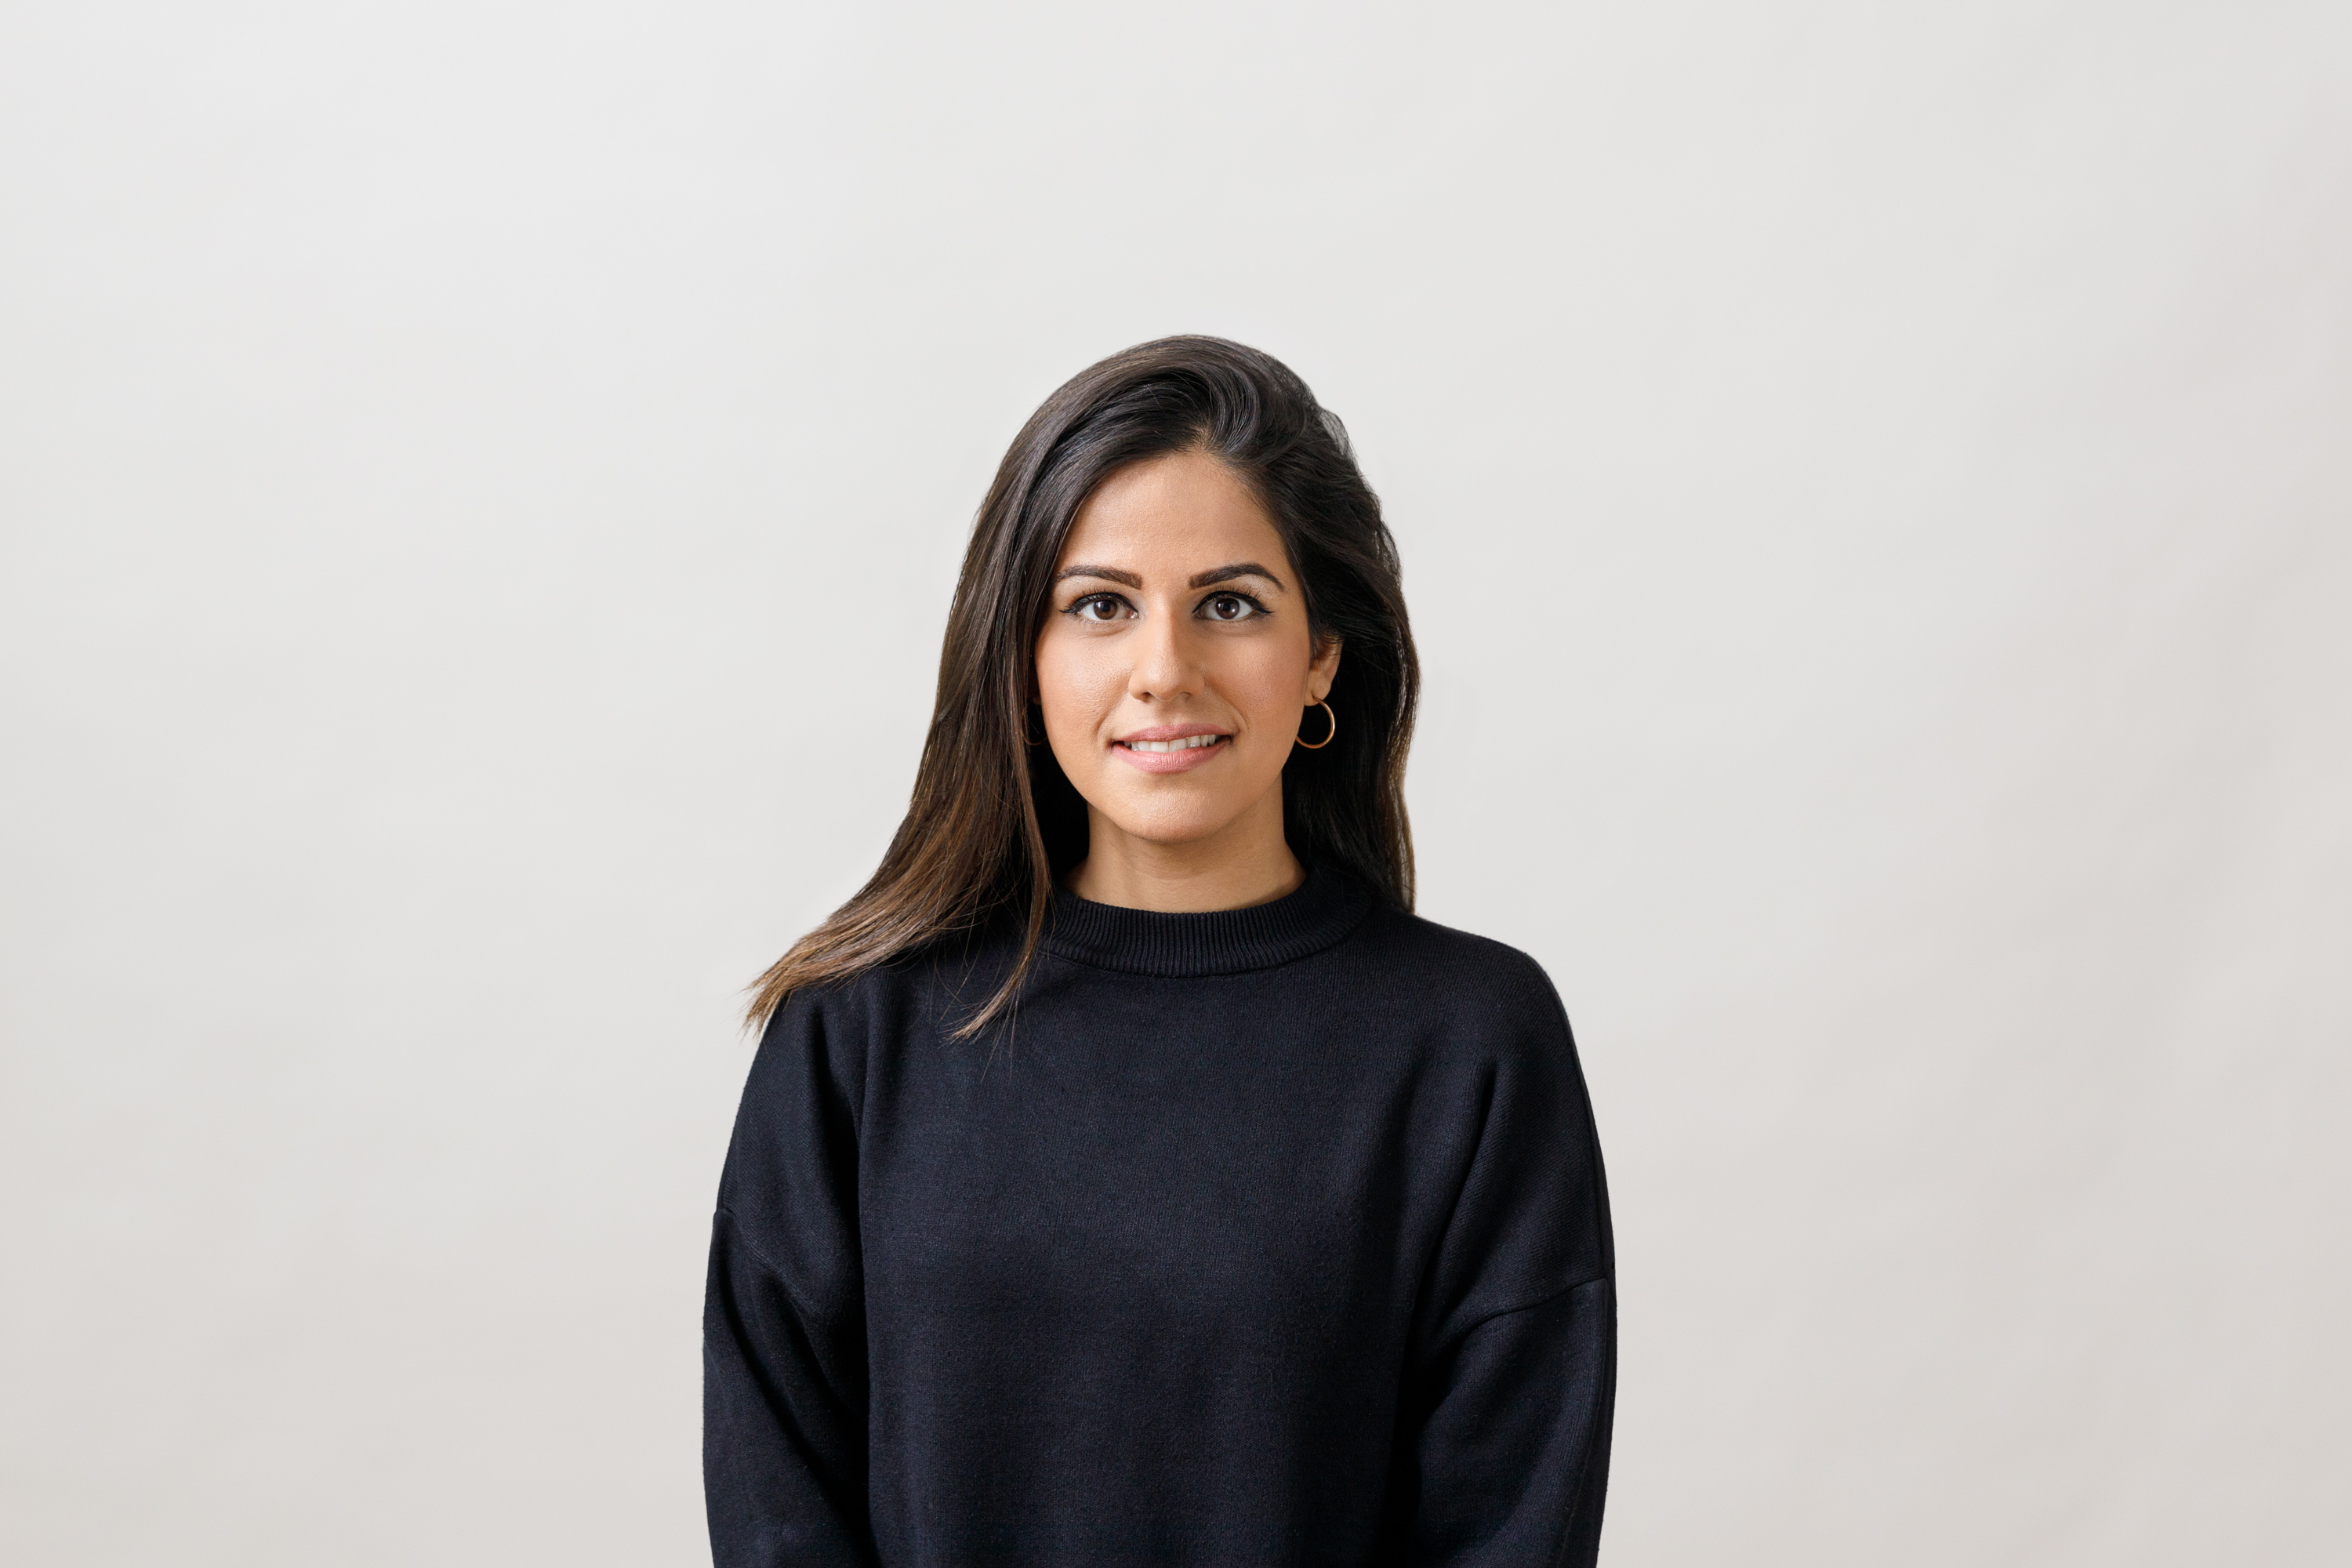 Alina Bassi, Founder & CEO, Kleiderly: Fighting climate change and empowering diverse women founders